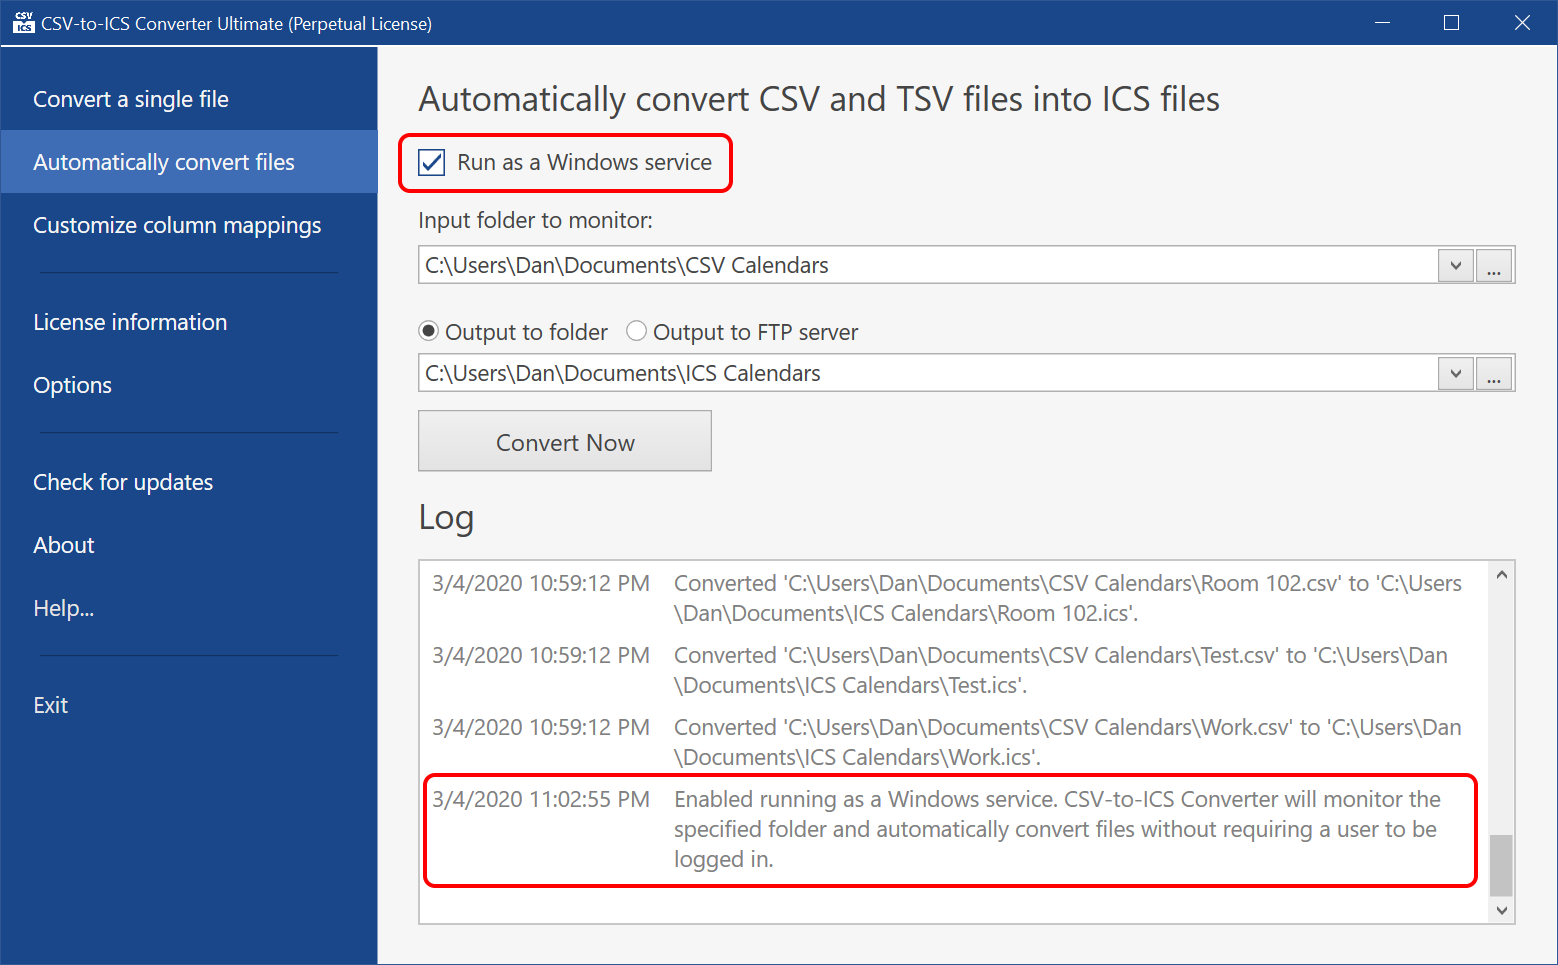 CSV-to-ICS Converter can be configured to run as a Windows service, where it will quietly monitor your CSV files for changes and automatically generate corresponding ICS files.